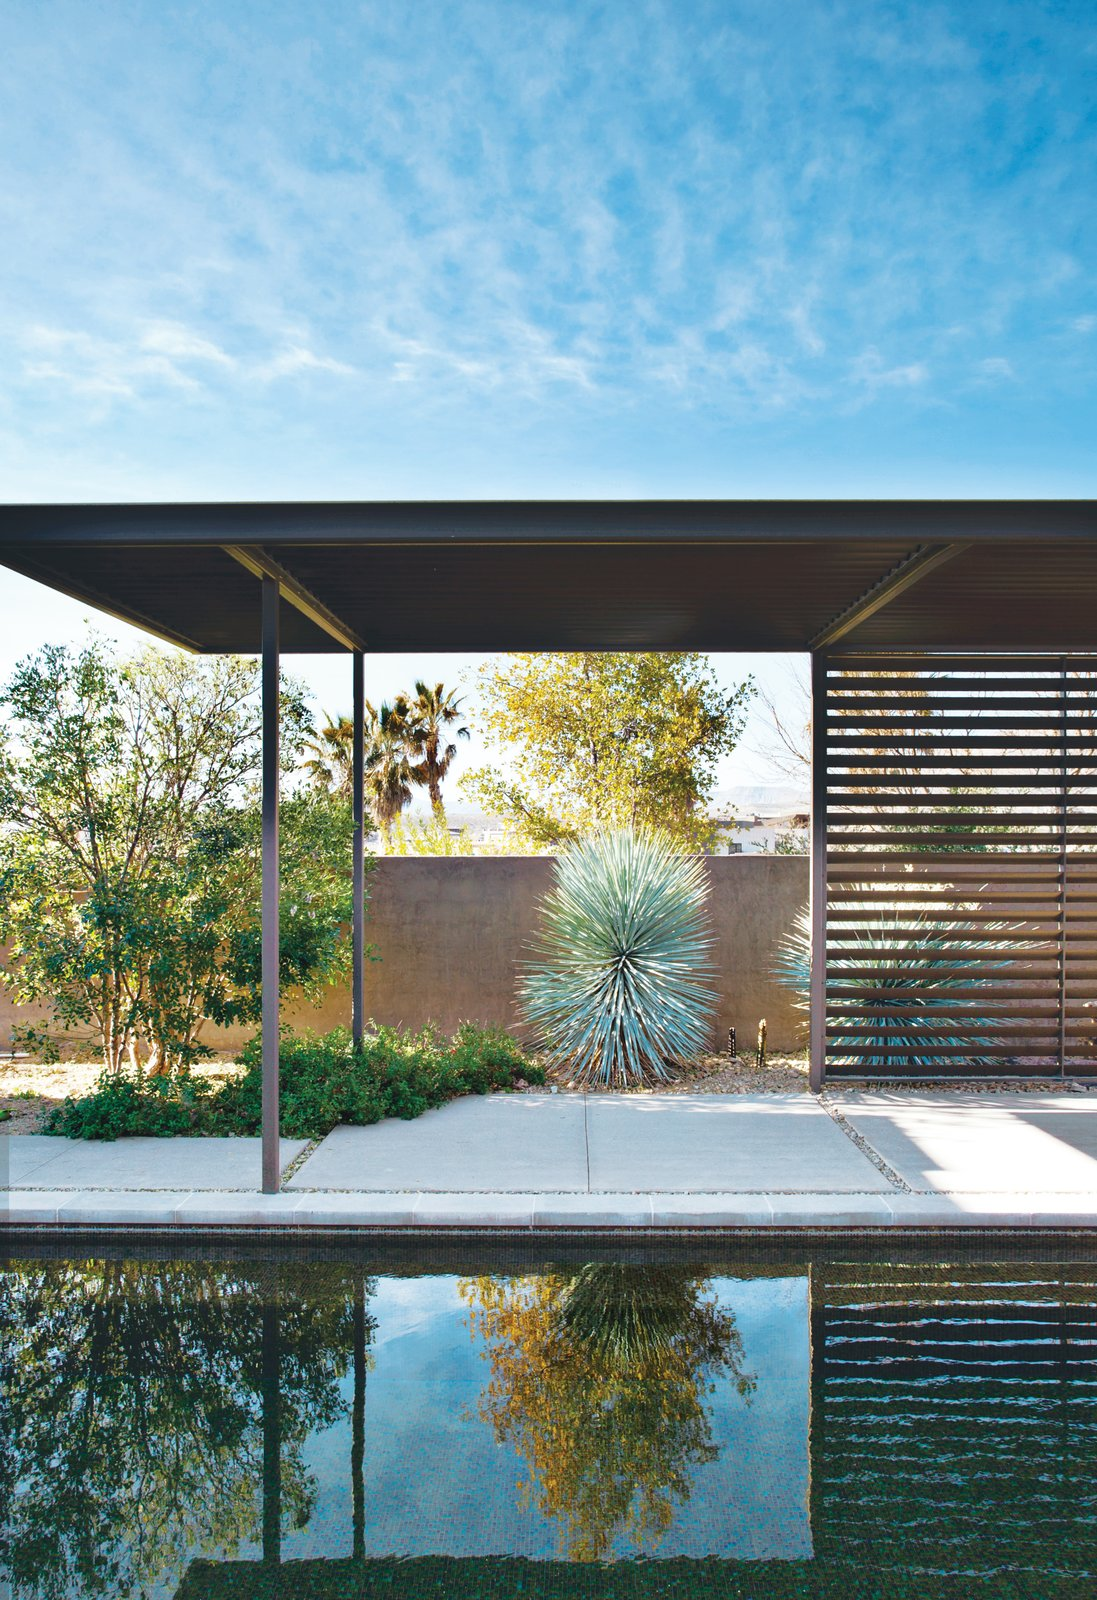 """Murren chose maintenance-free materials, such as Stepstone precast concrete pavers for exterior decks and river-rock-covered flat roofs. He recalls his neighbors' astonishment and delight when """"we went from a giant hole in the ground to a two-story house in just four days.""""  Prefab Homes by Dwell from A Picturesque Desert Prefab"""